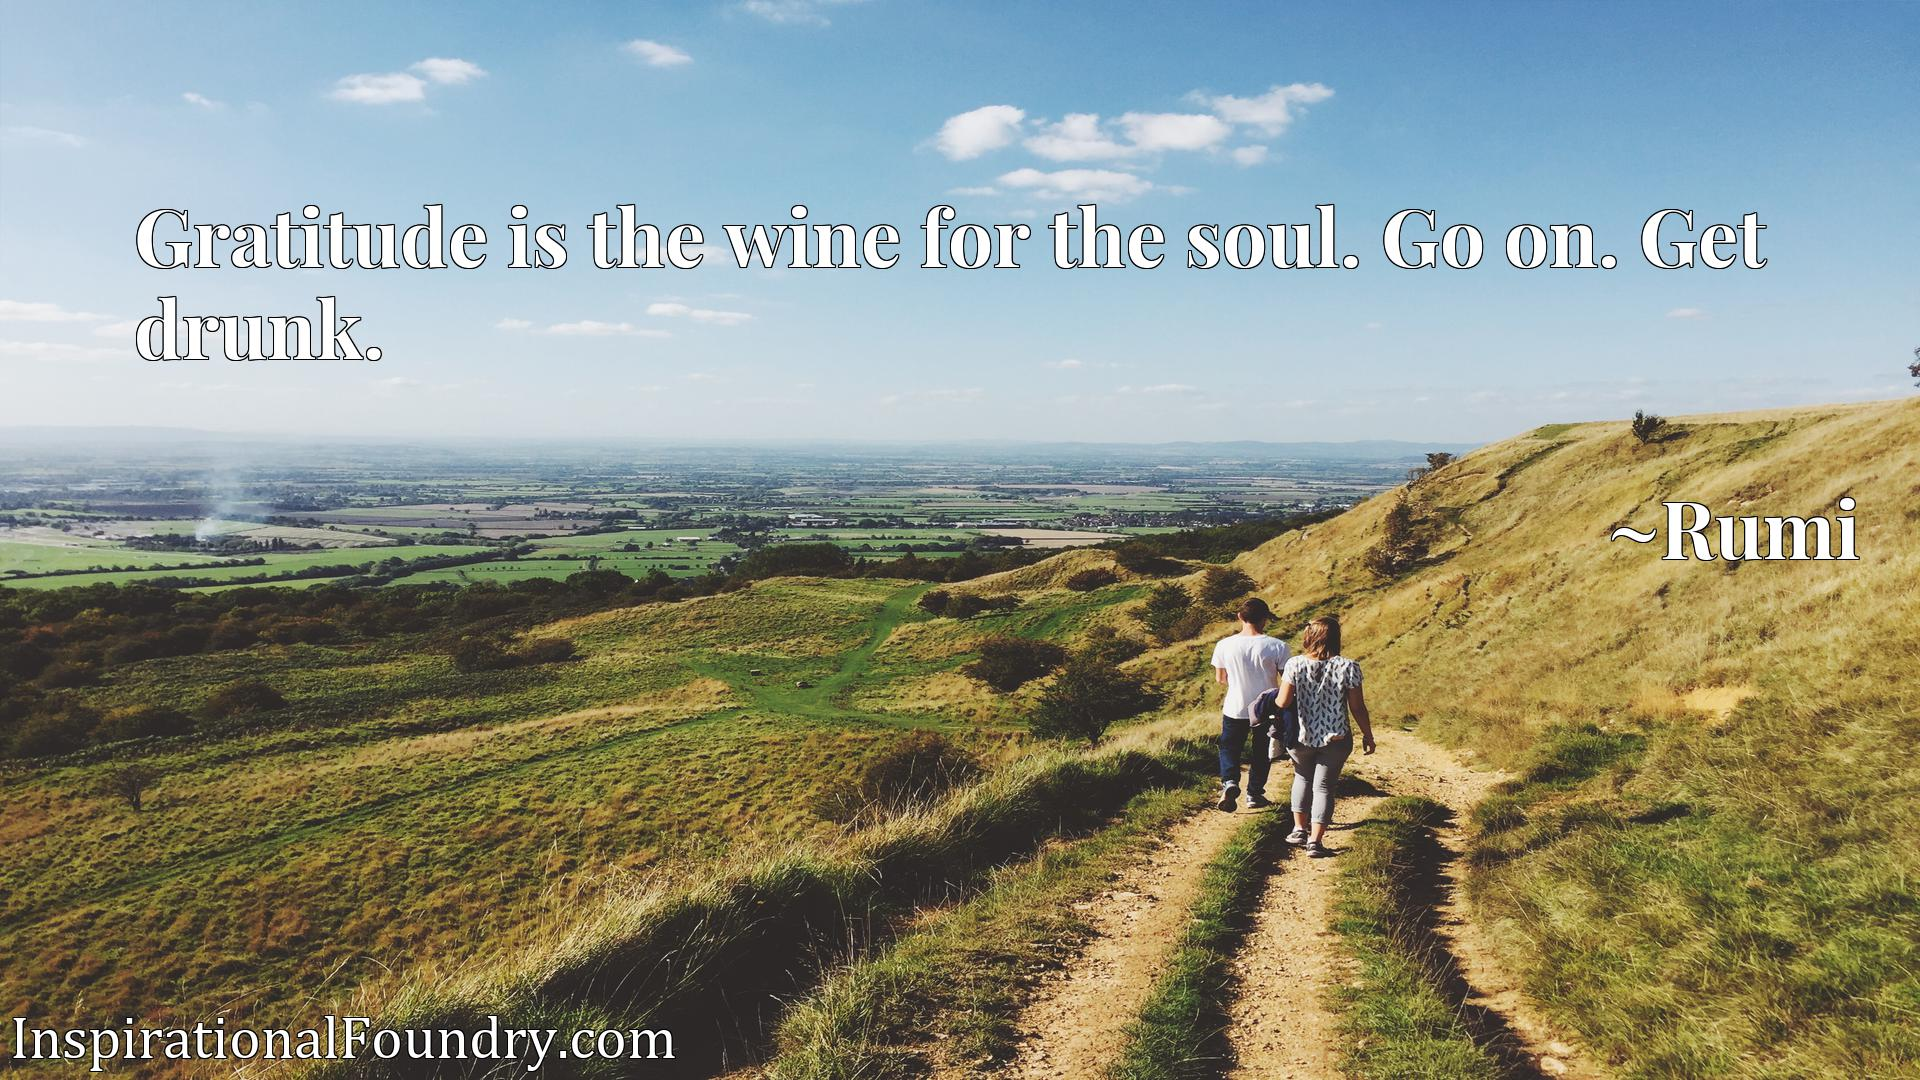 Gratitude is the wine for the soul. Go on. Get drunk.